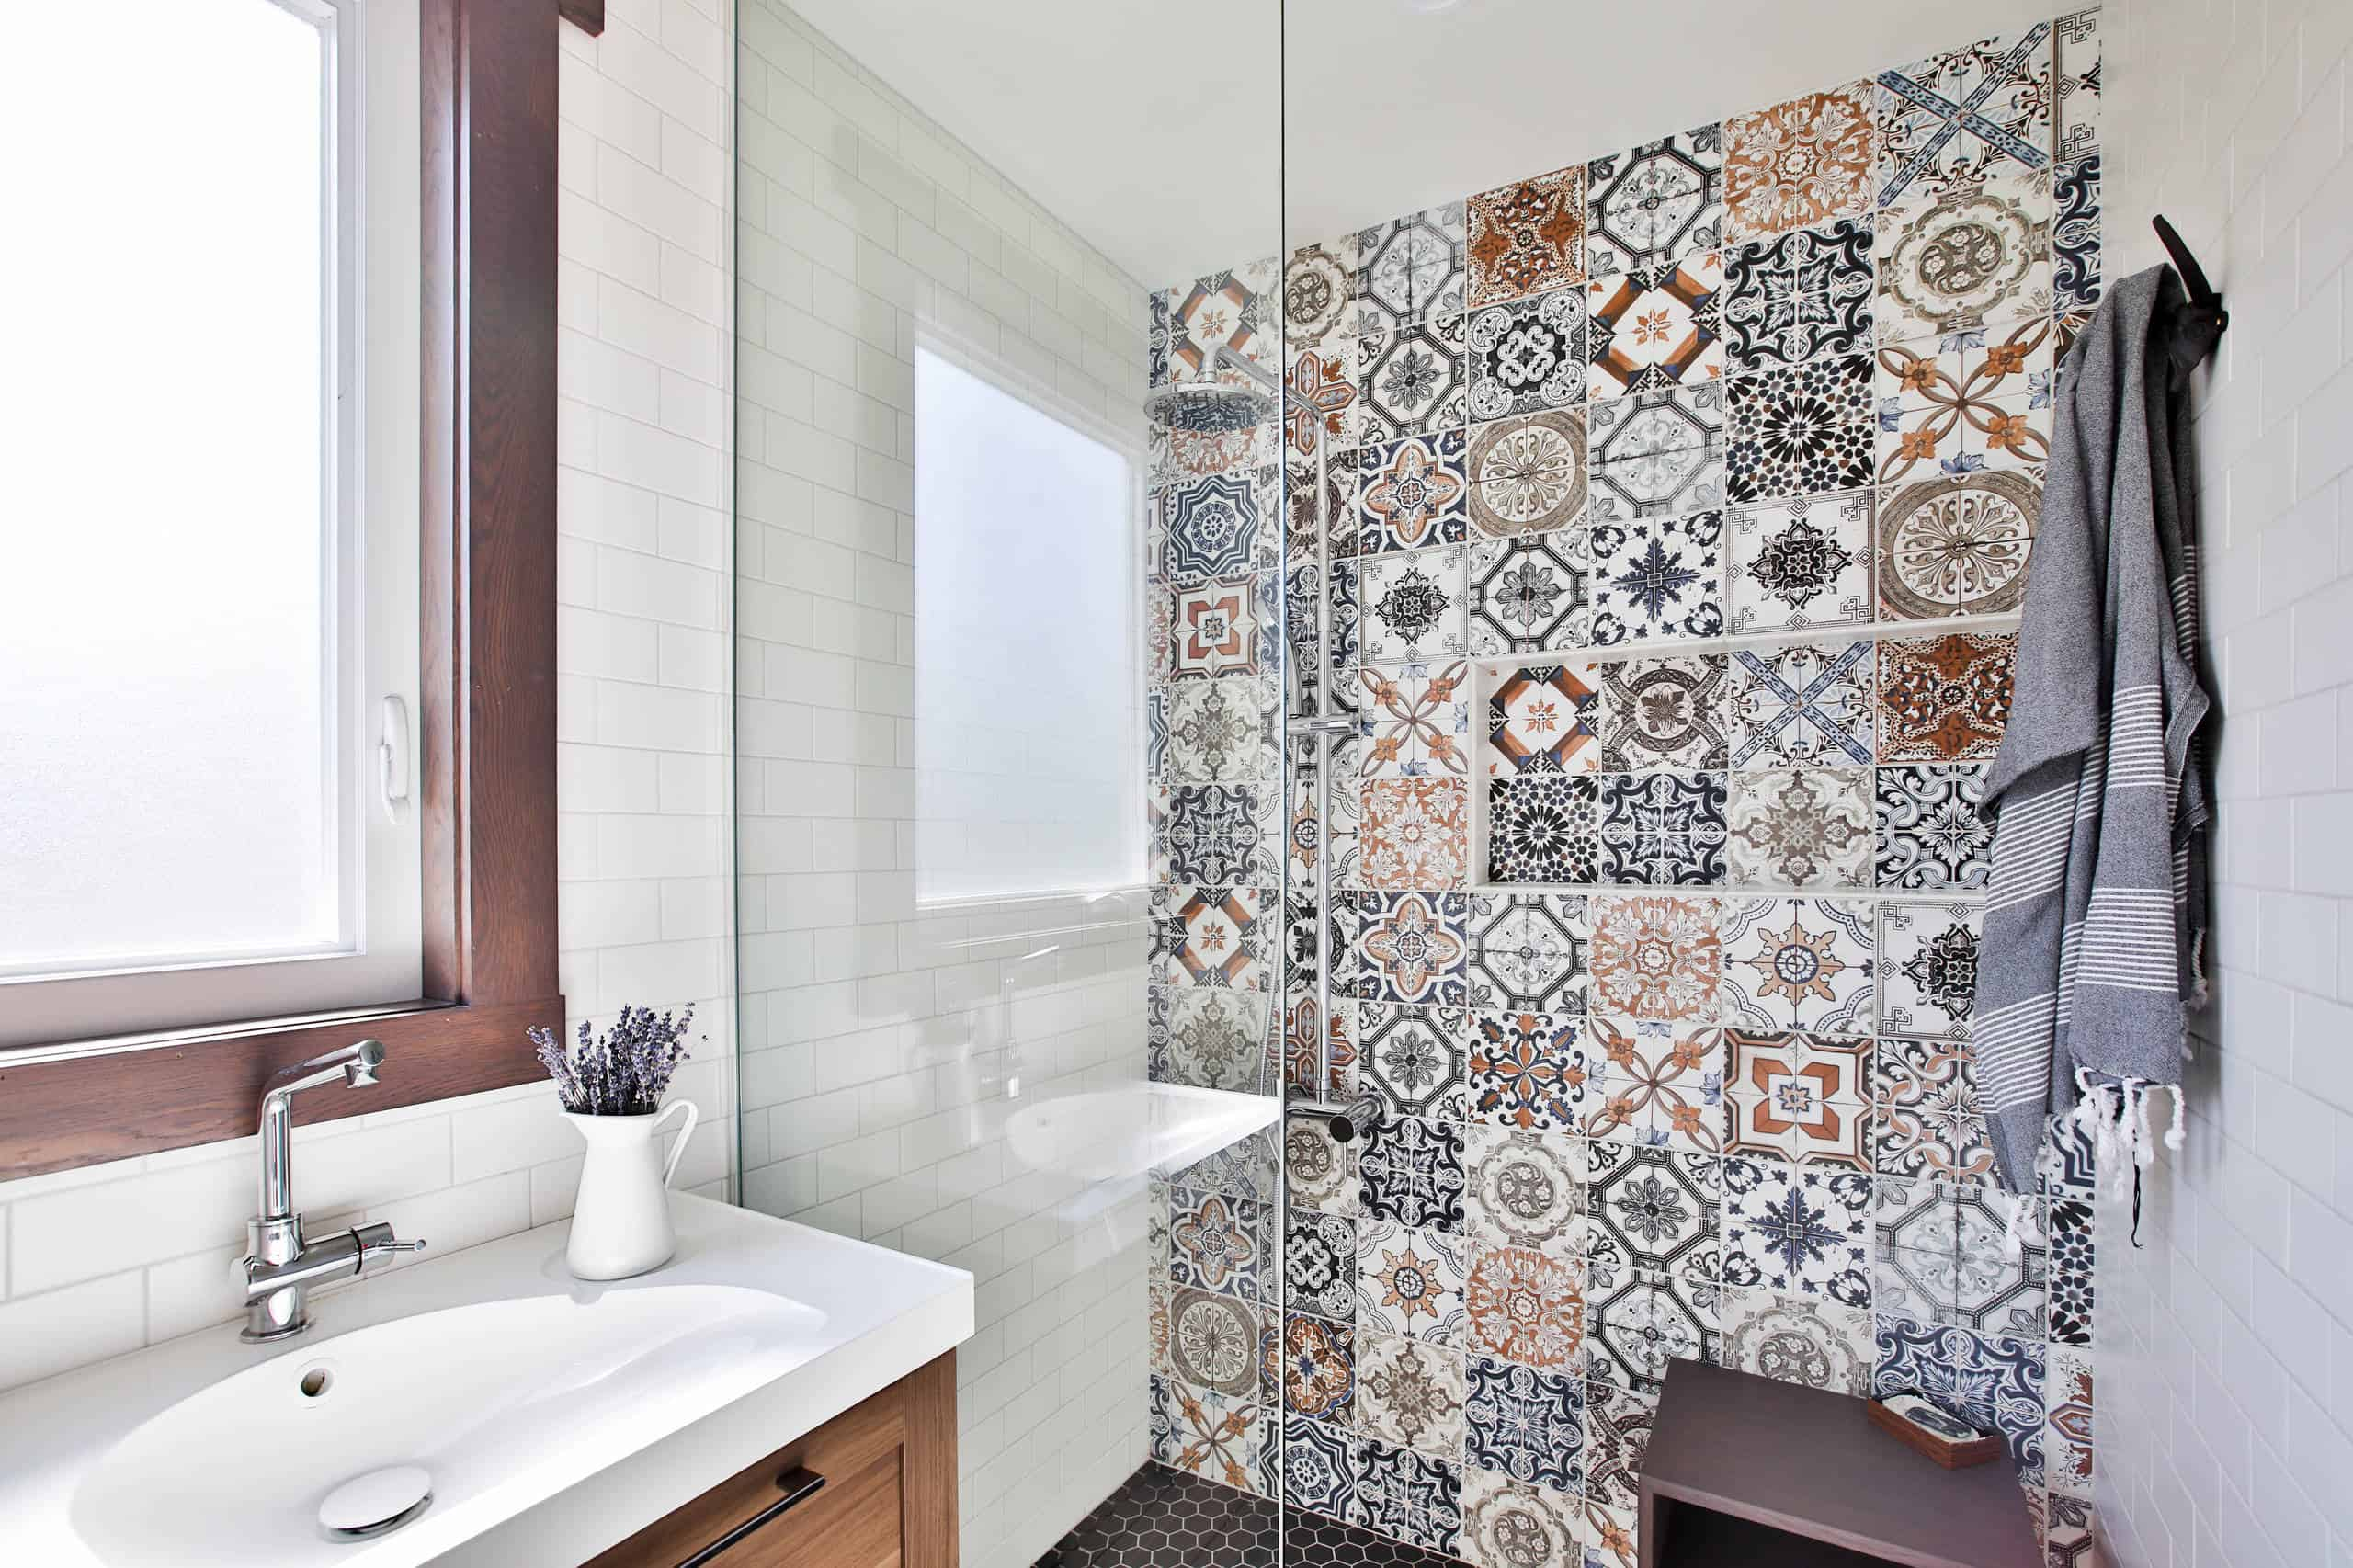 28 Small Bathroom Ideas With A Shower [PHOTOS]